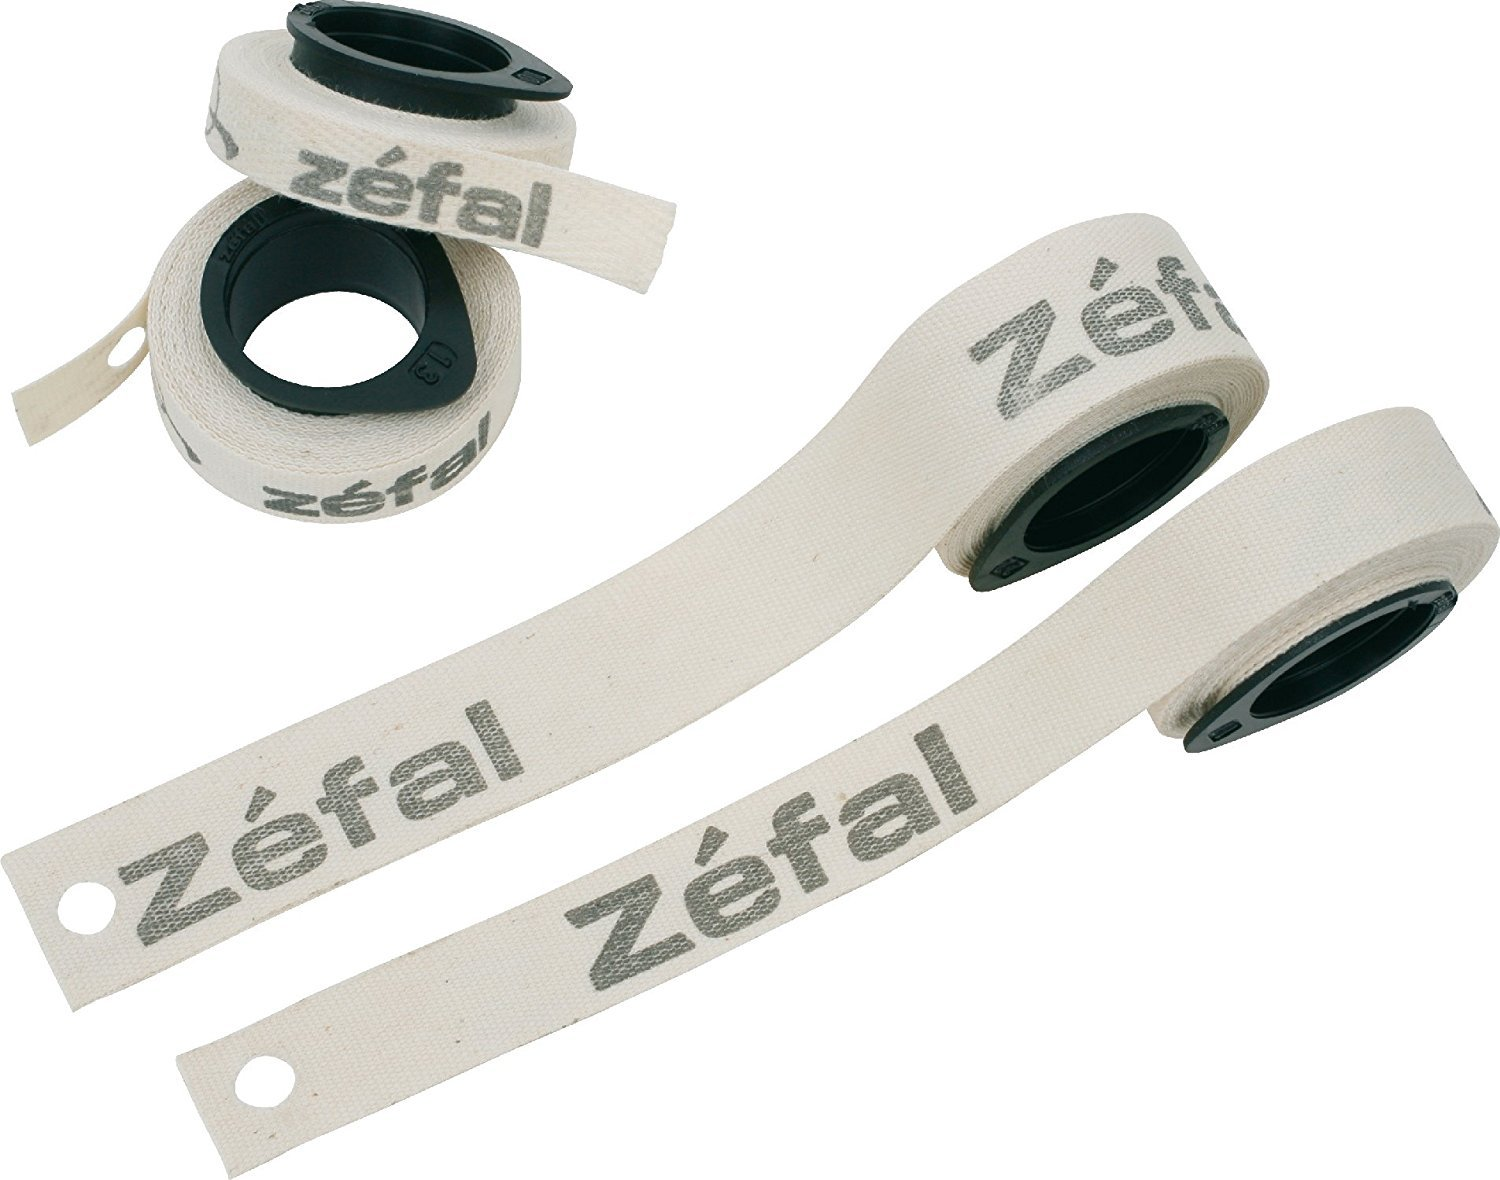 Zefal bicycle rim tape 13mm wide 1 roll